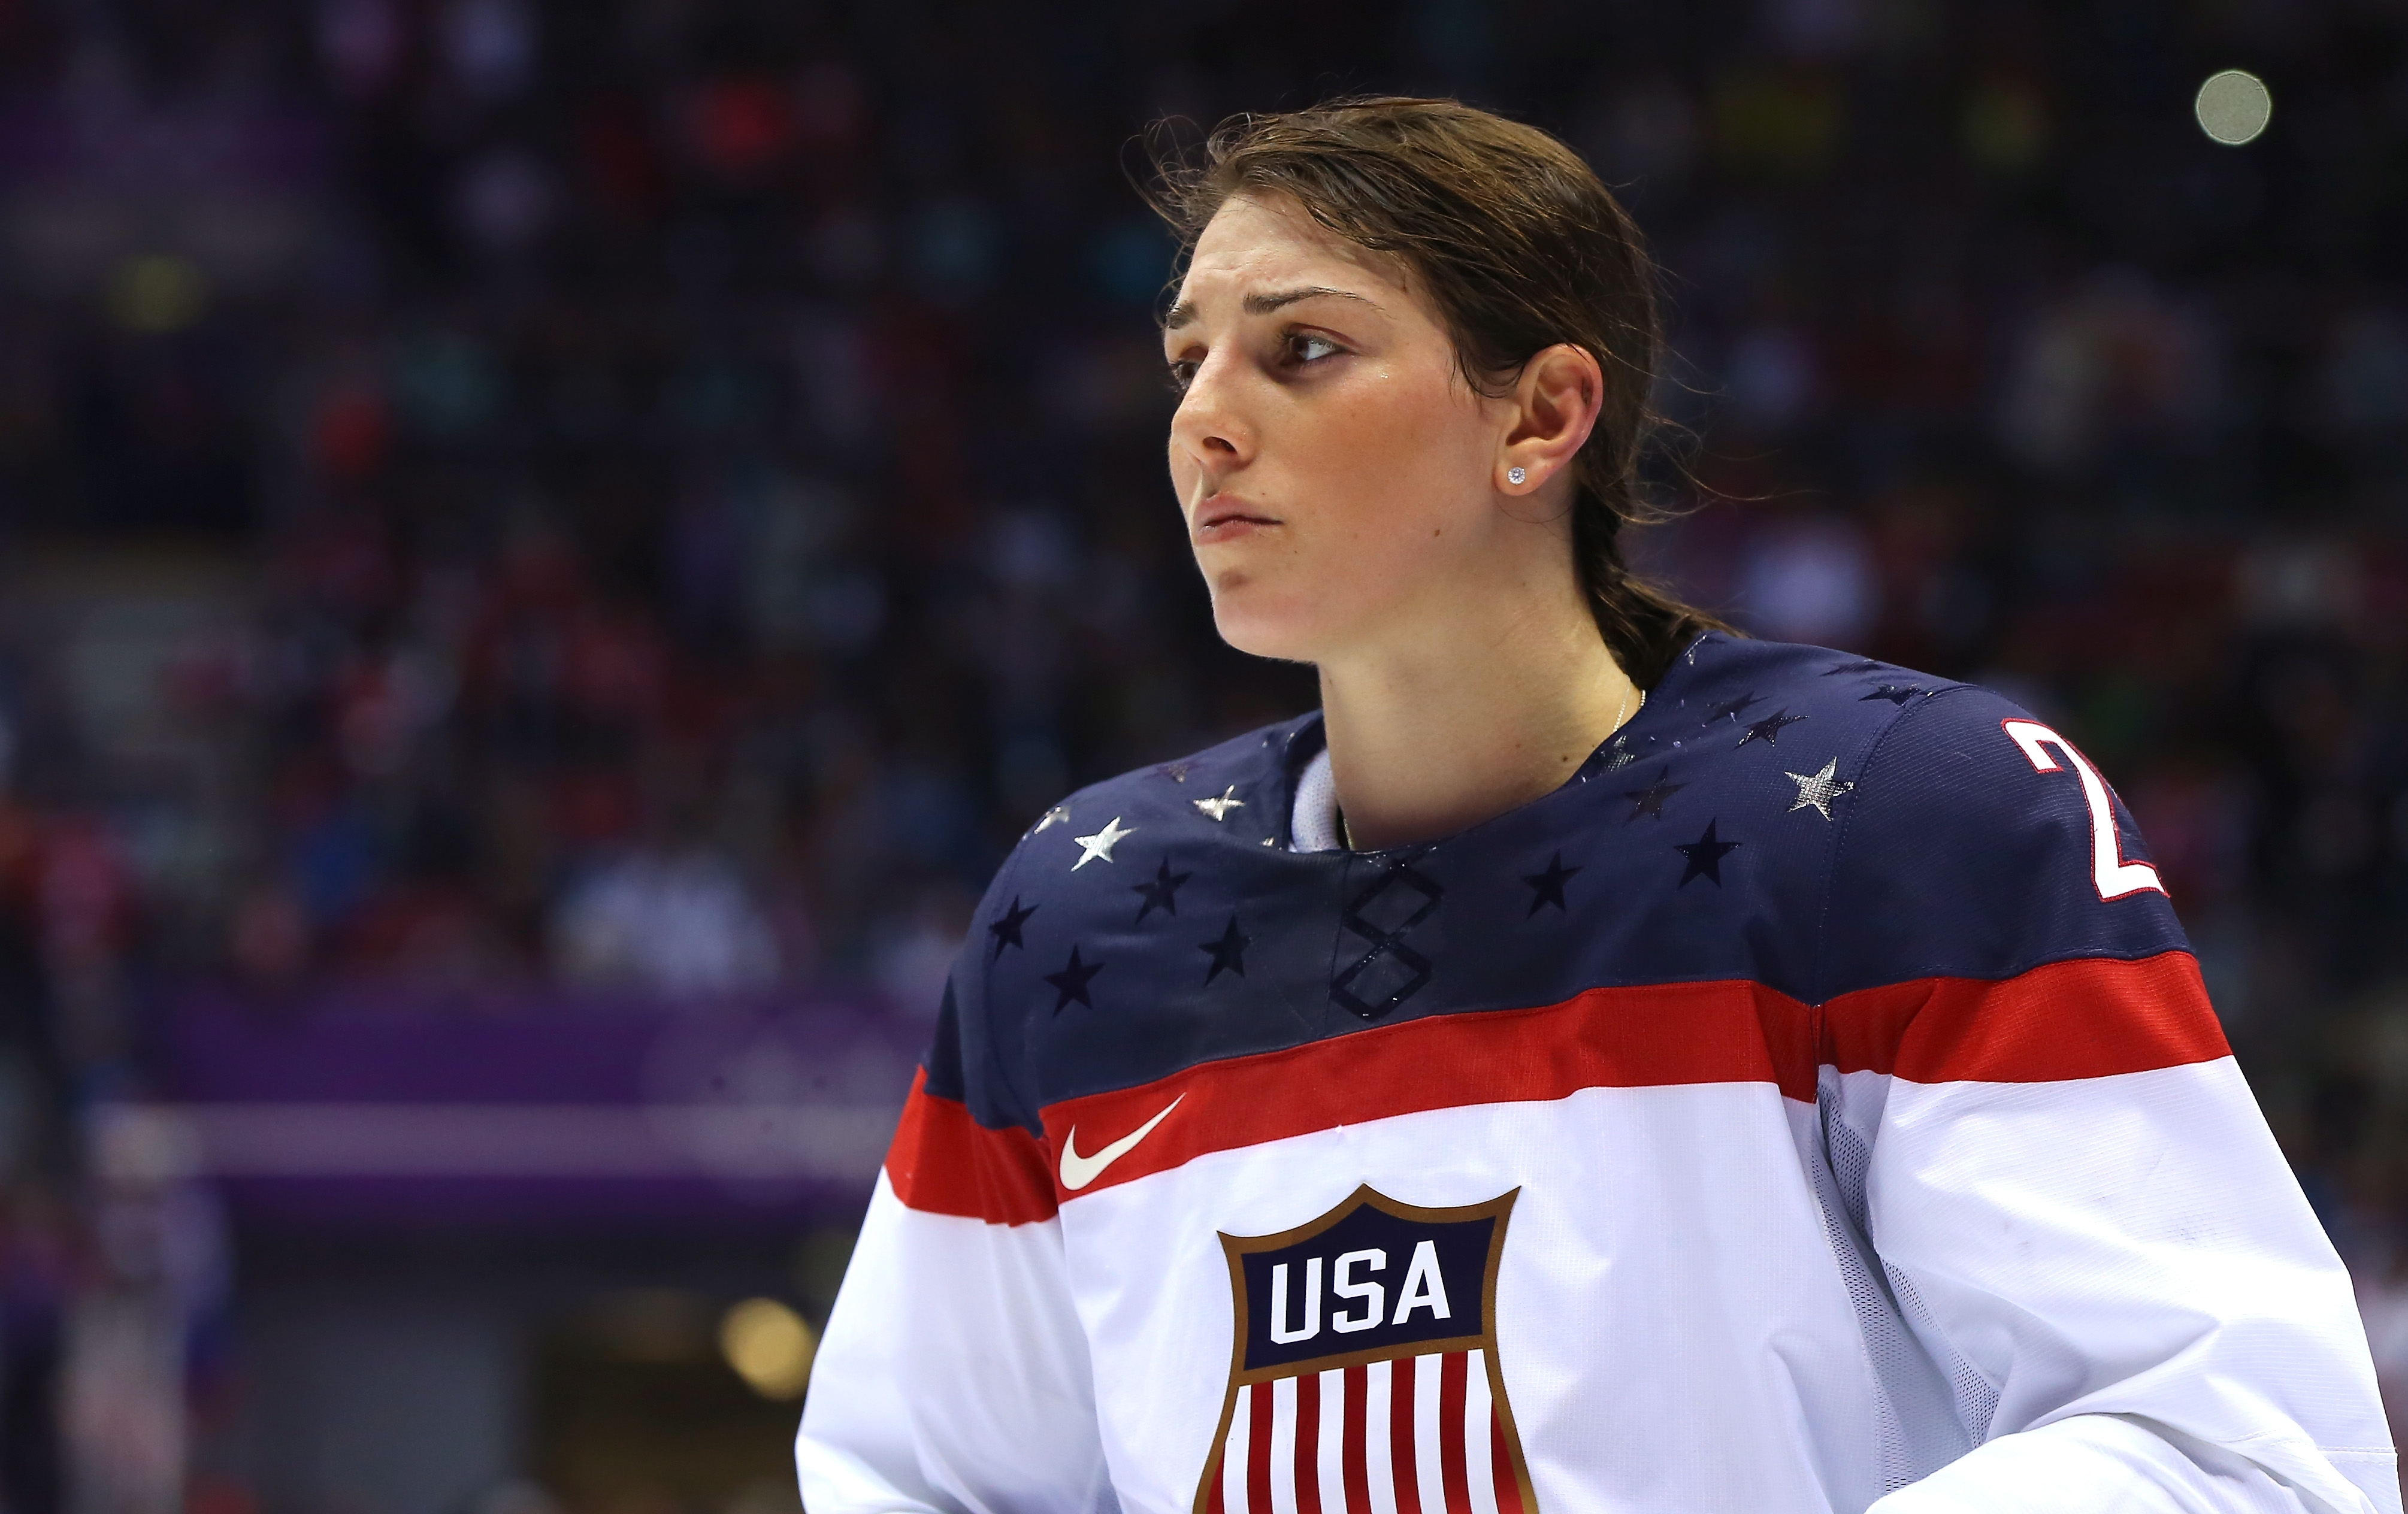 Olympian Lee Stecklein was the Buffalo Beauts' first-round pick in Saturday's NWHL draft. (Getty Images)